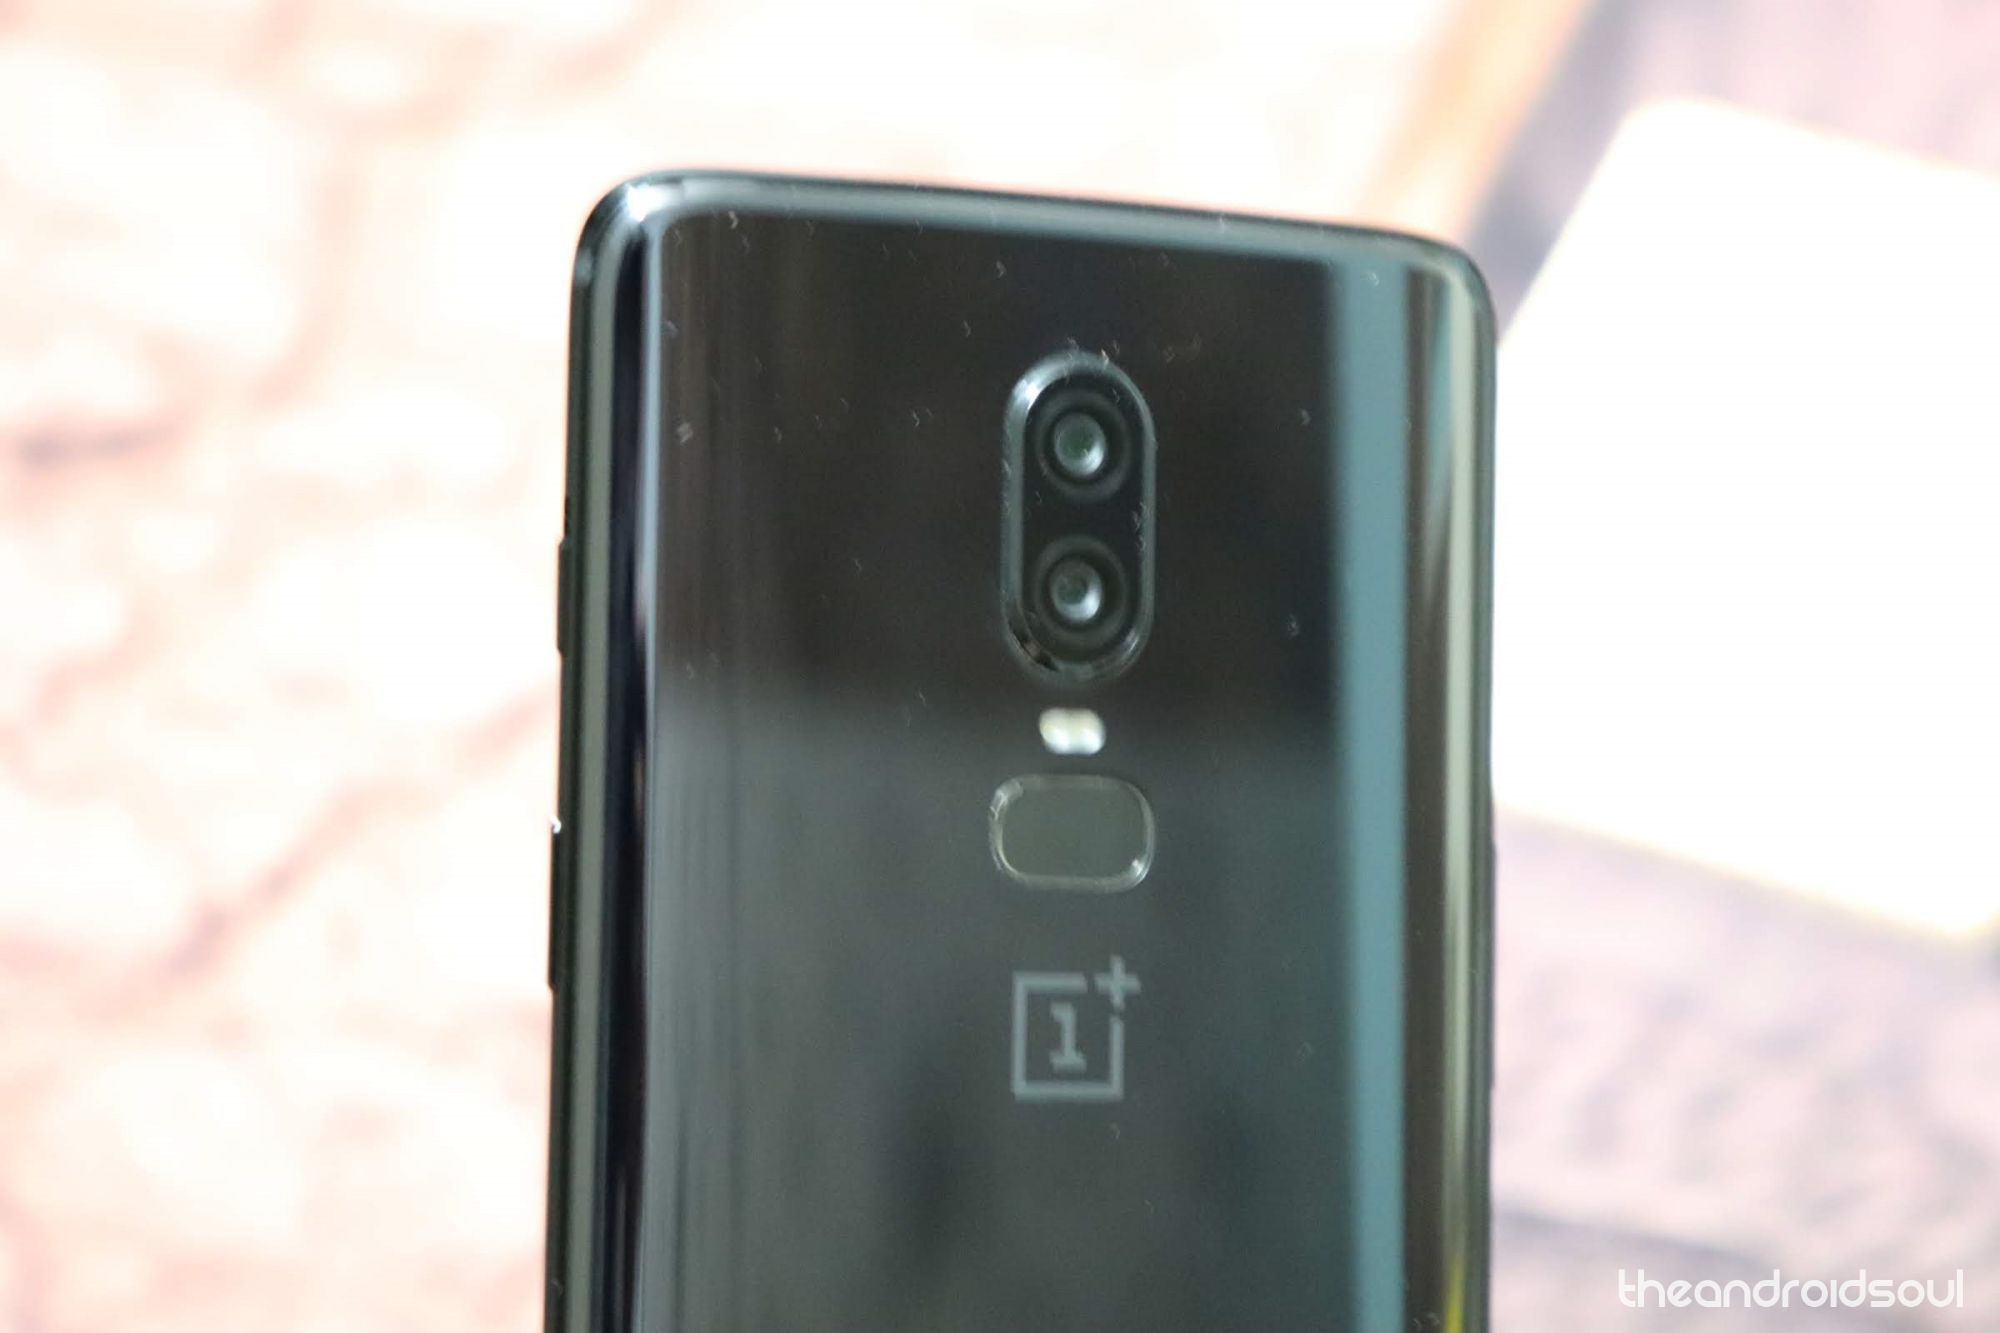 info for d4a18 11b99 Is OnePlus 6 waterproof? Let's find out